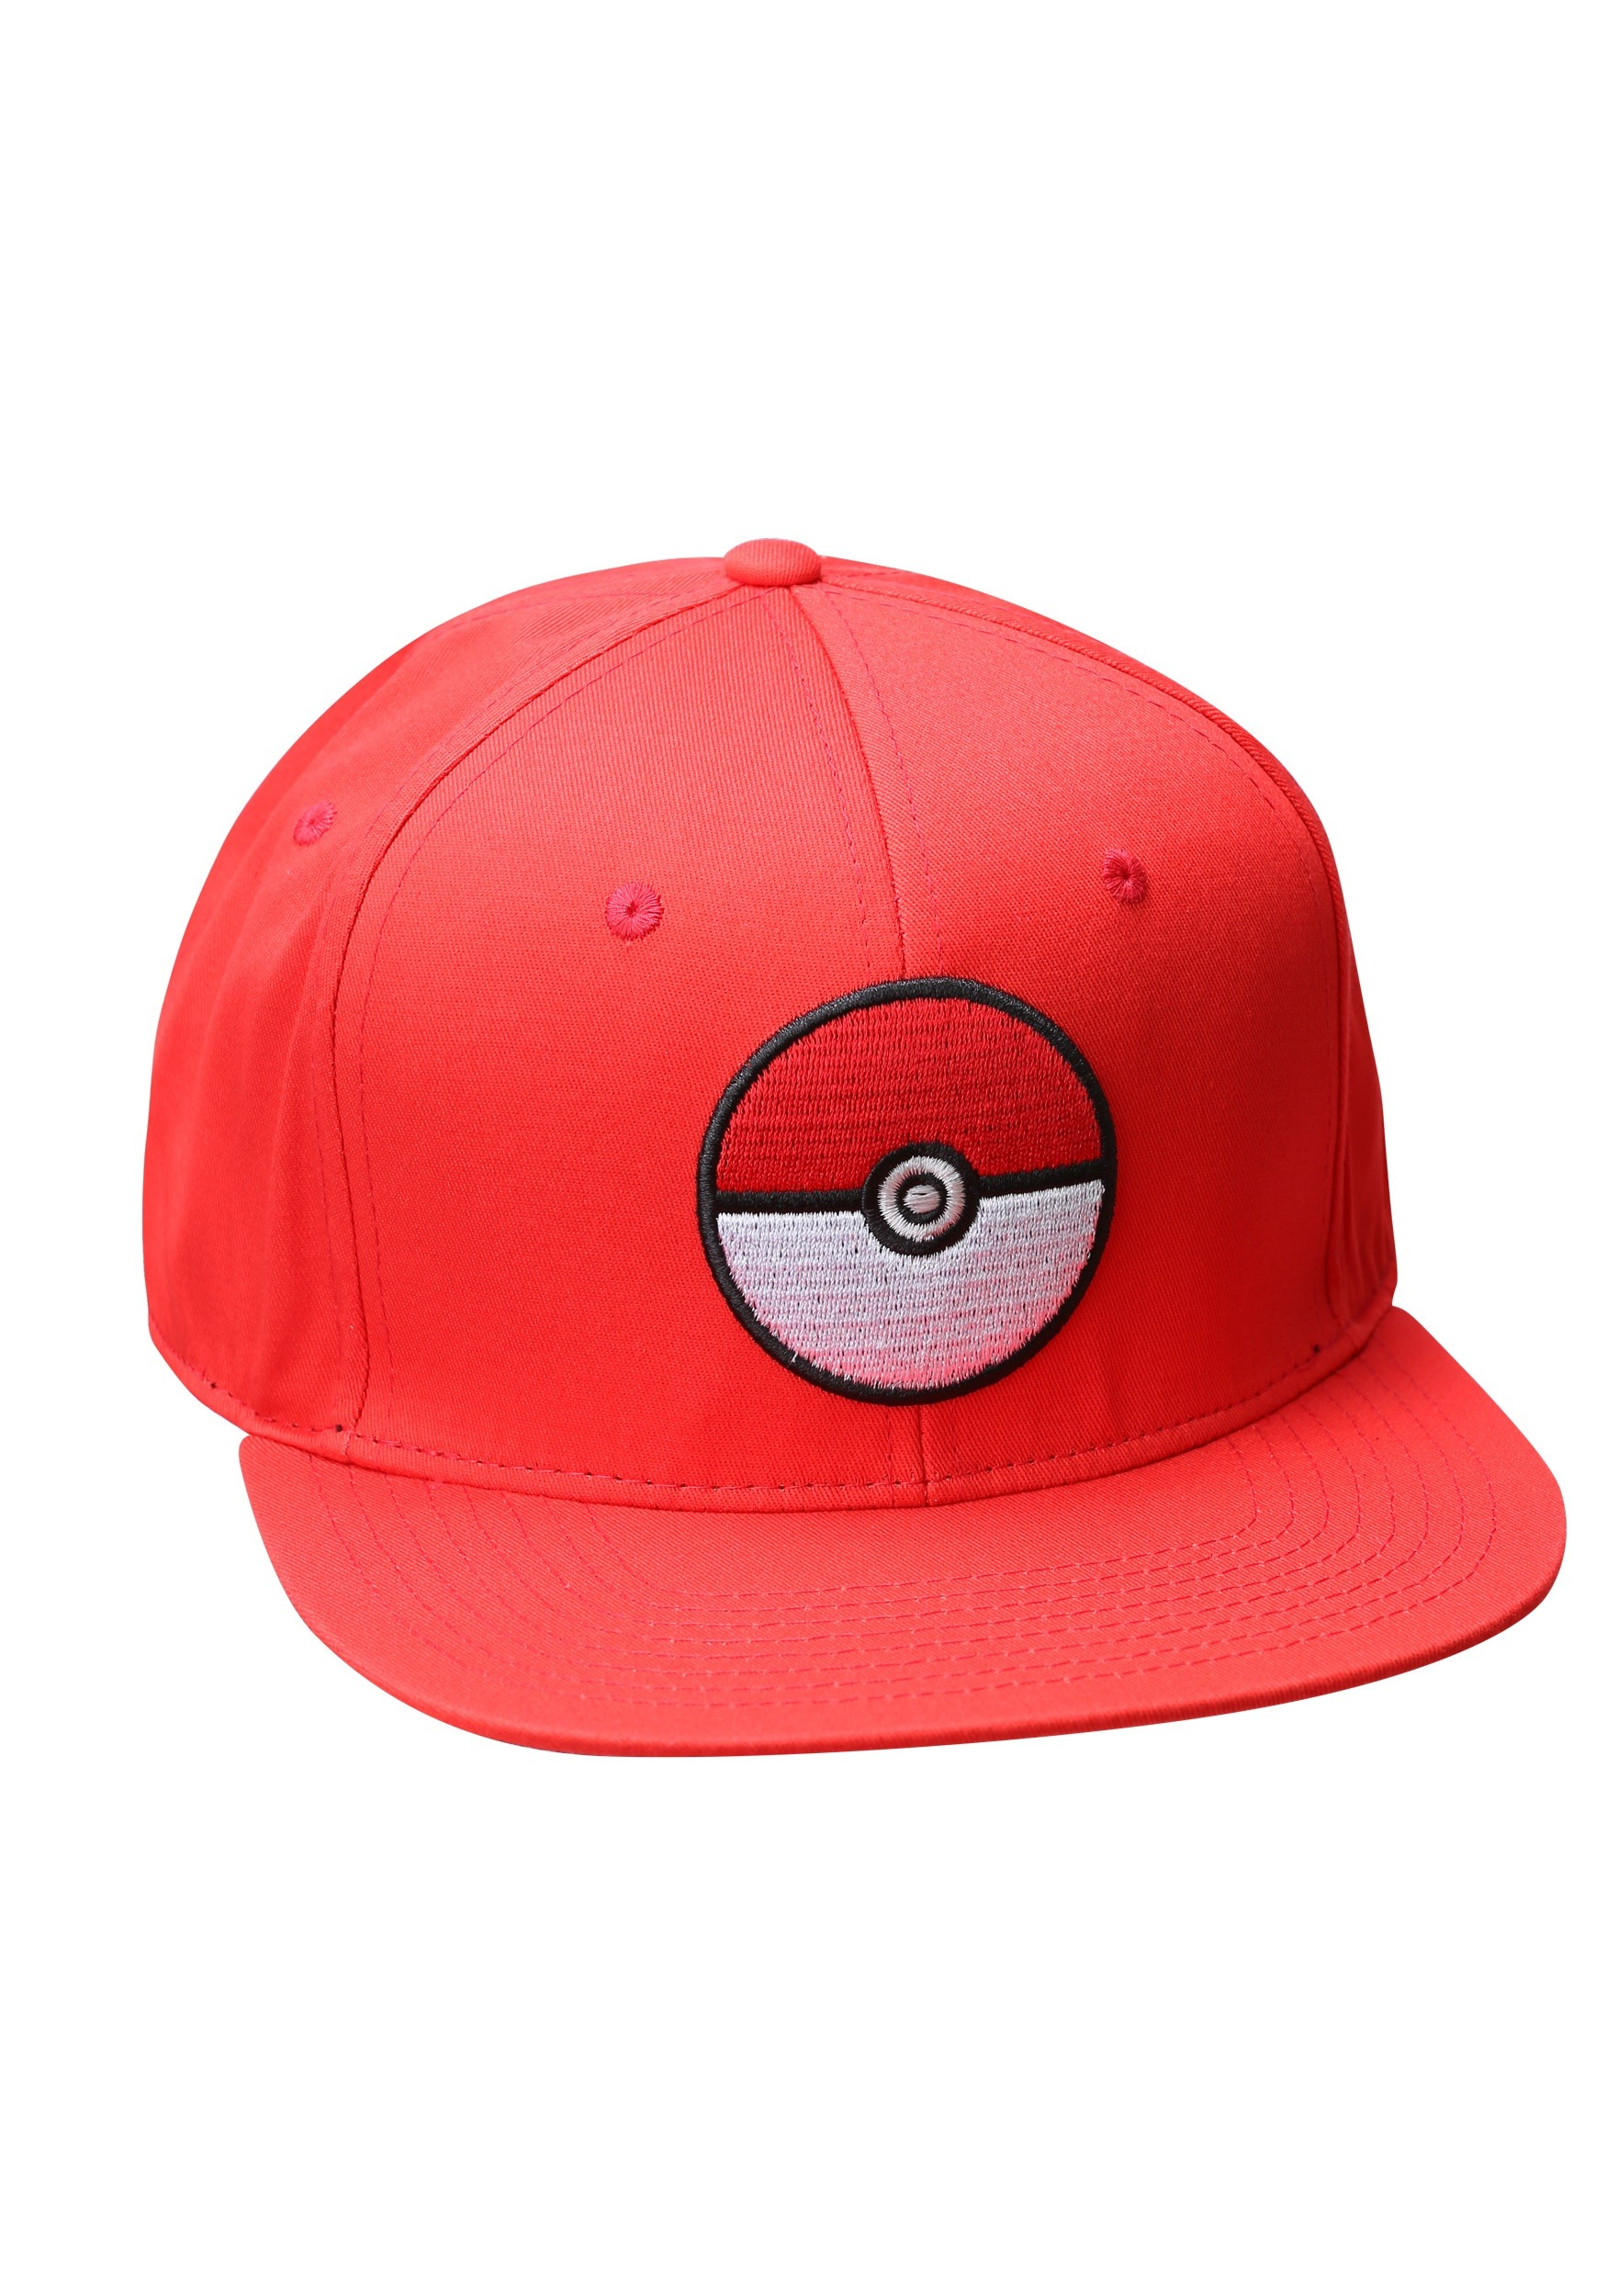 Pokemon Pokeball Trainer Red Snapback Hat BWSB4XFYPOK00RE00